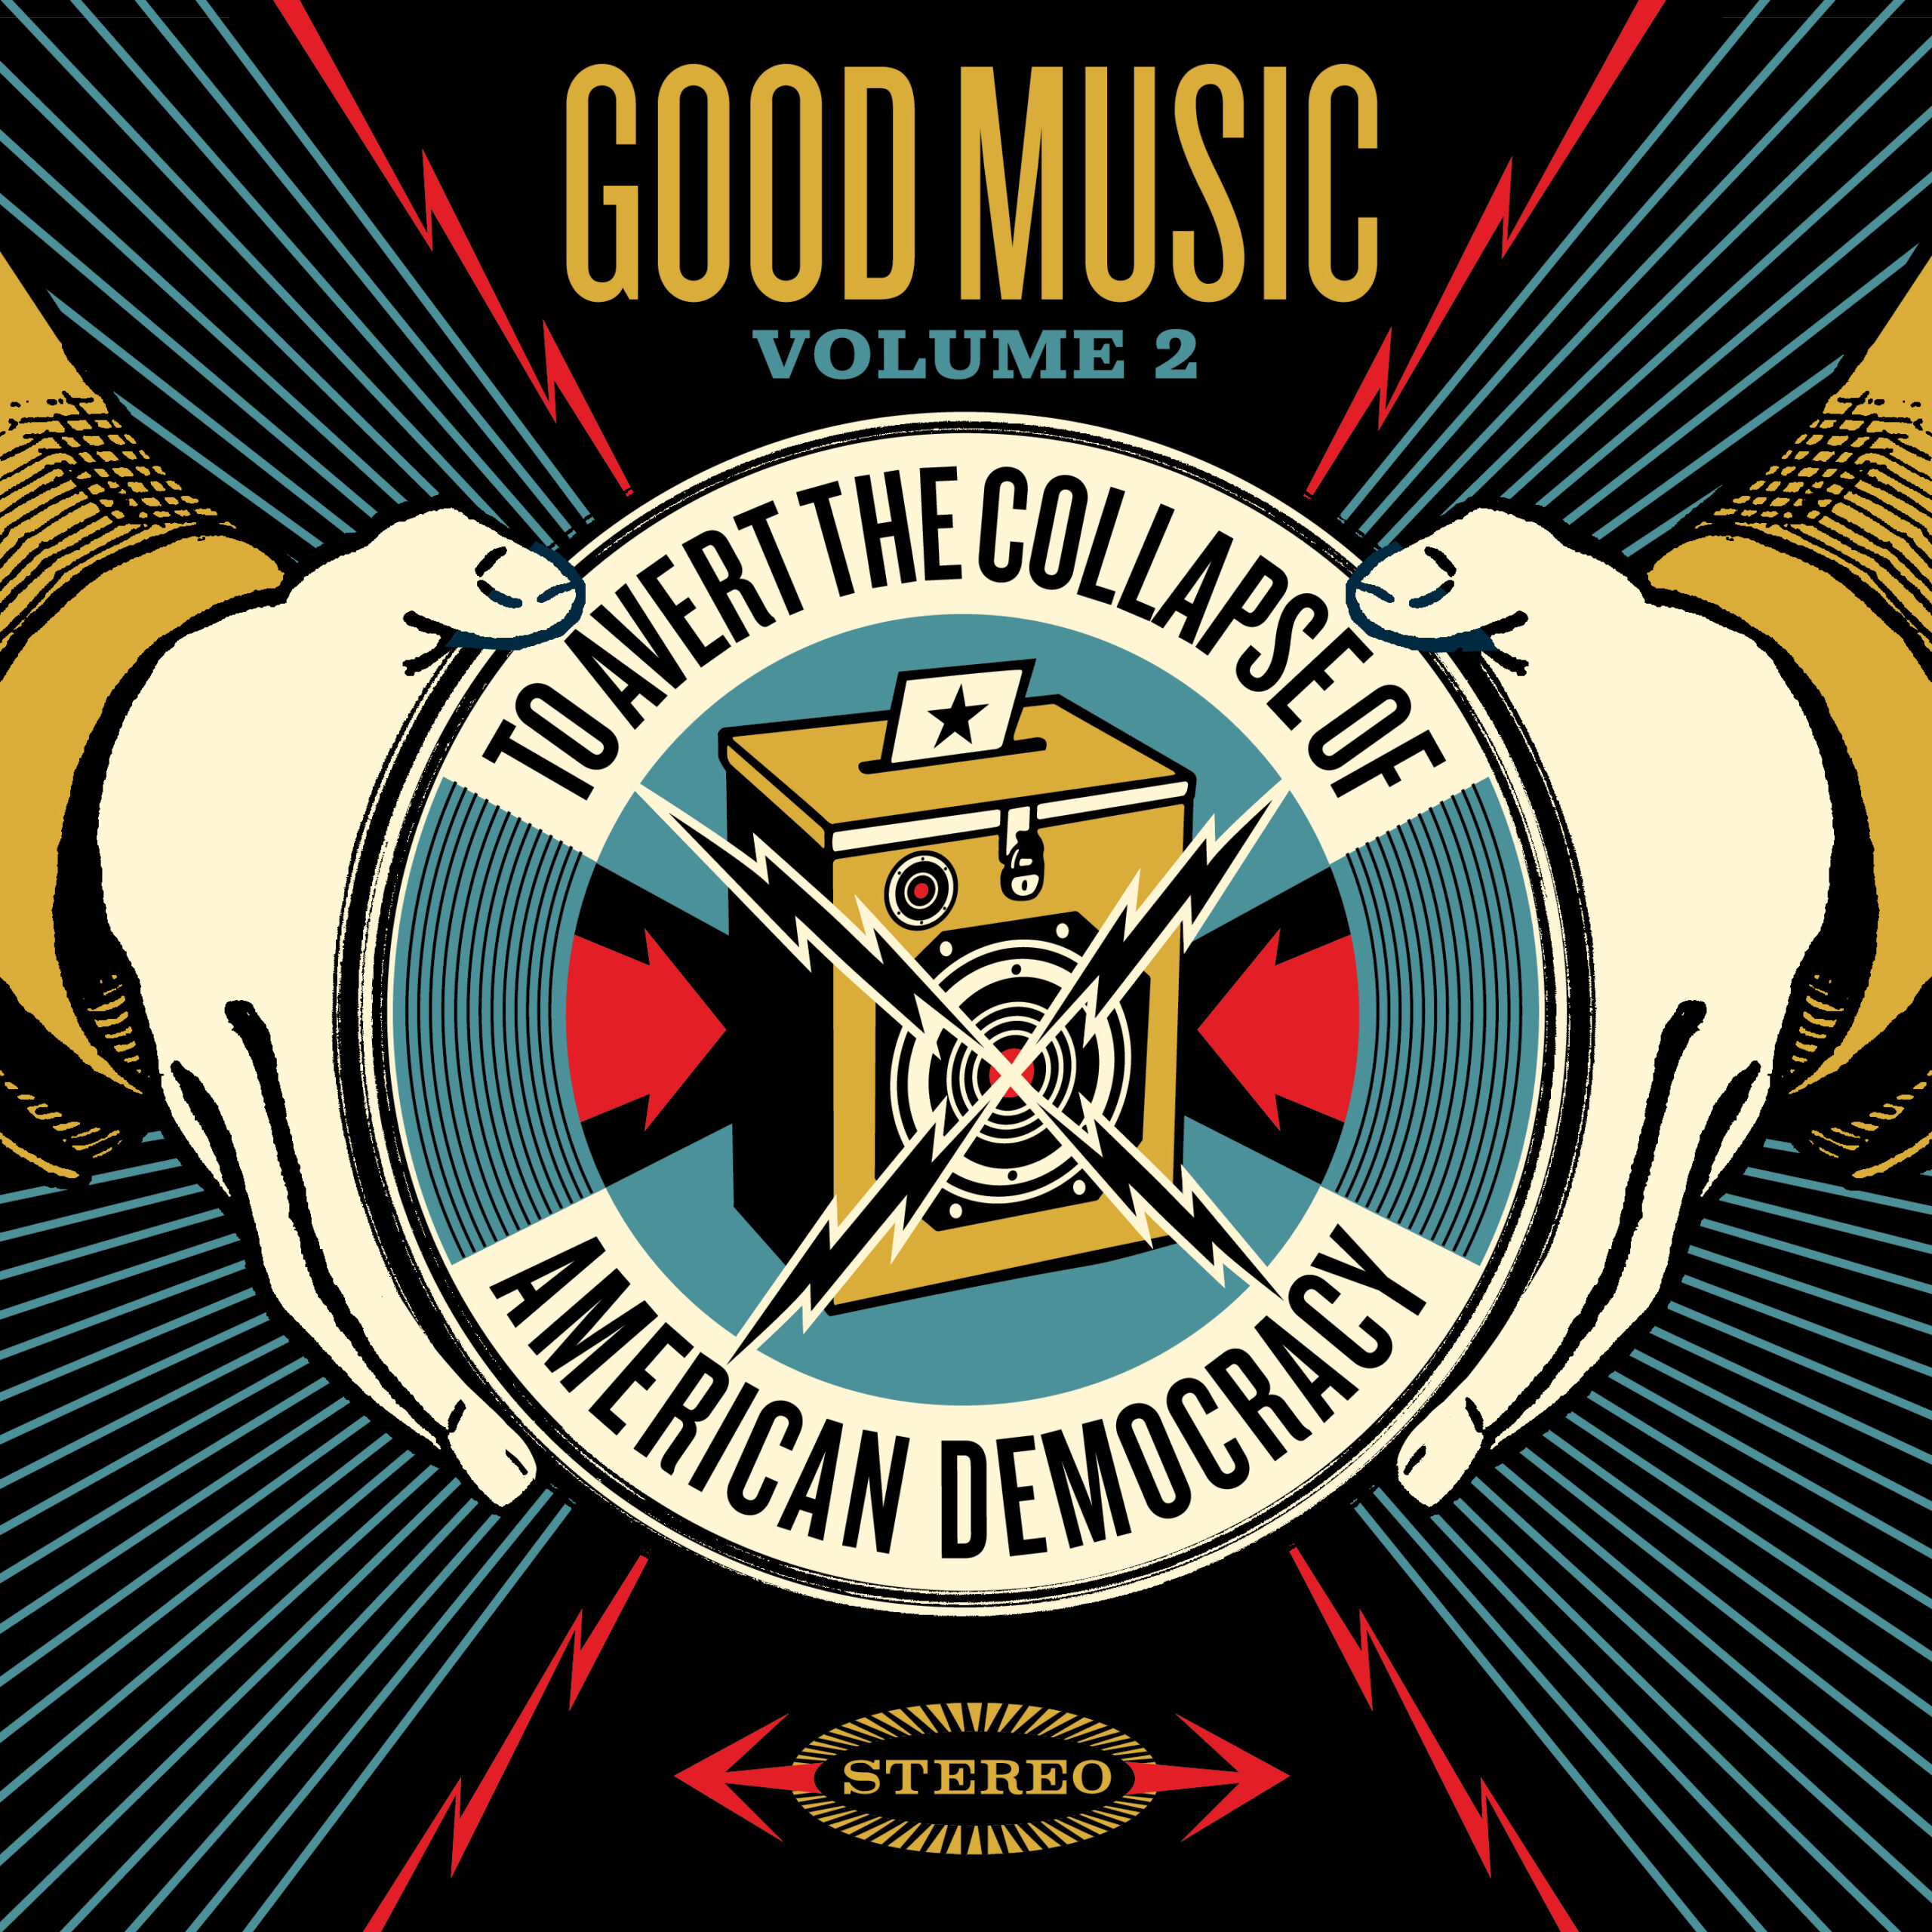 Good Music To Avert The Collapse Of American Democracy, Volume 2 - Obey  Giant